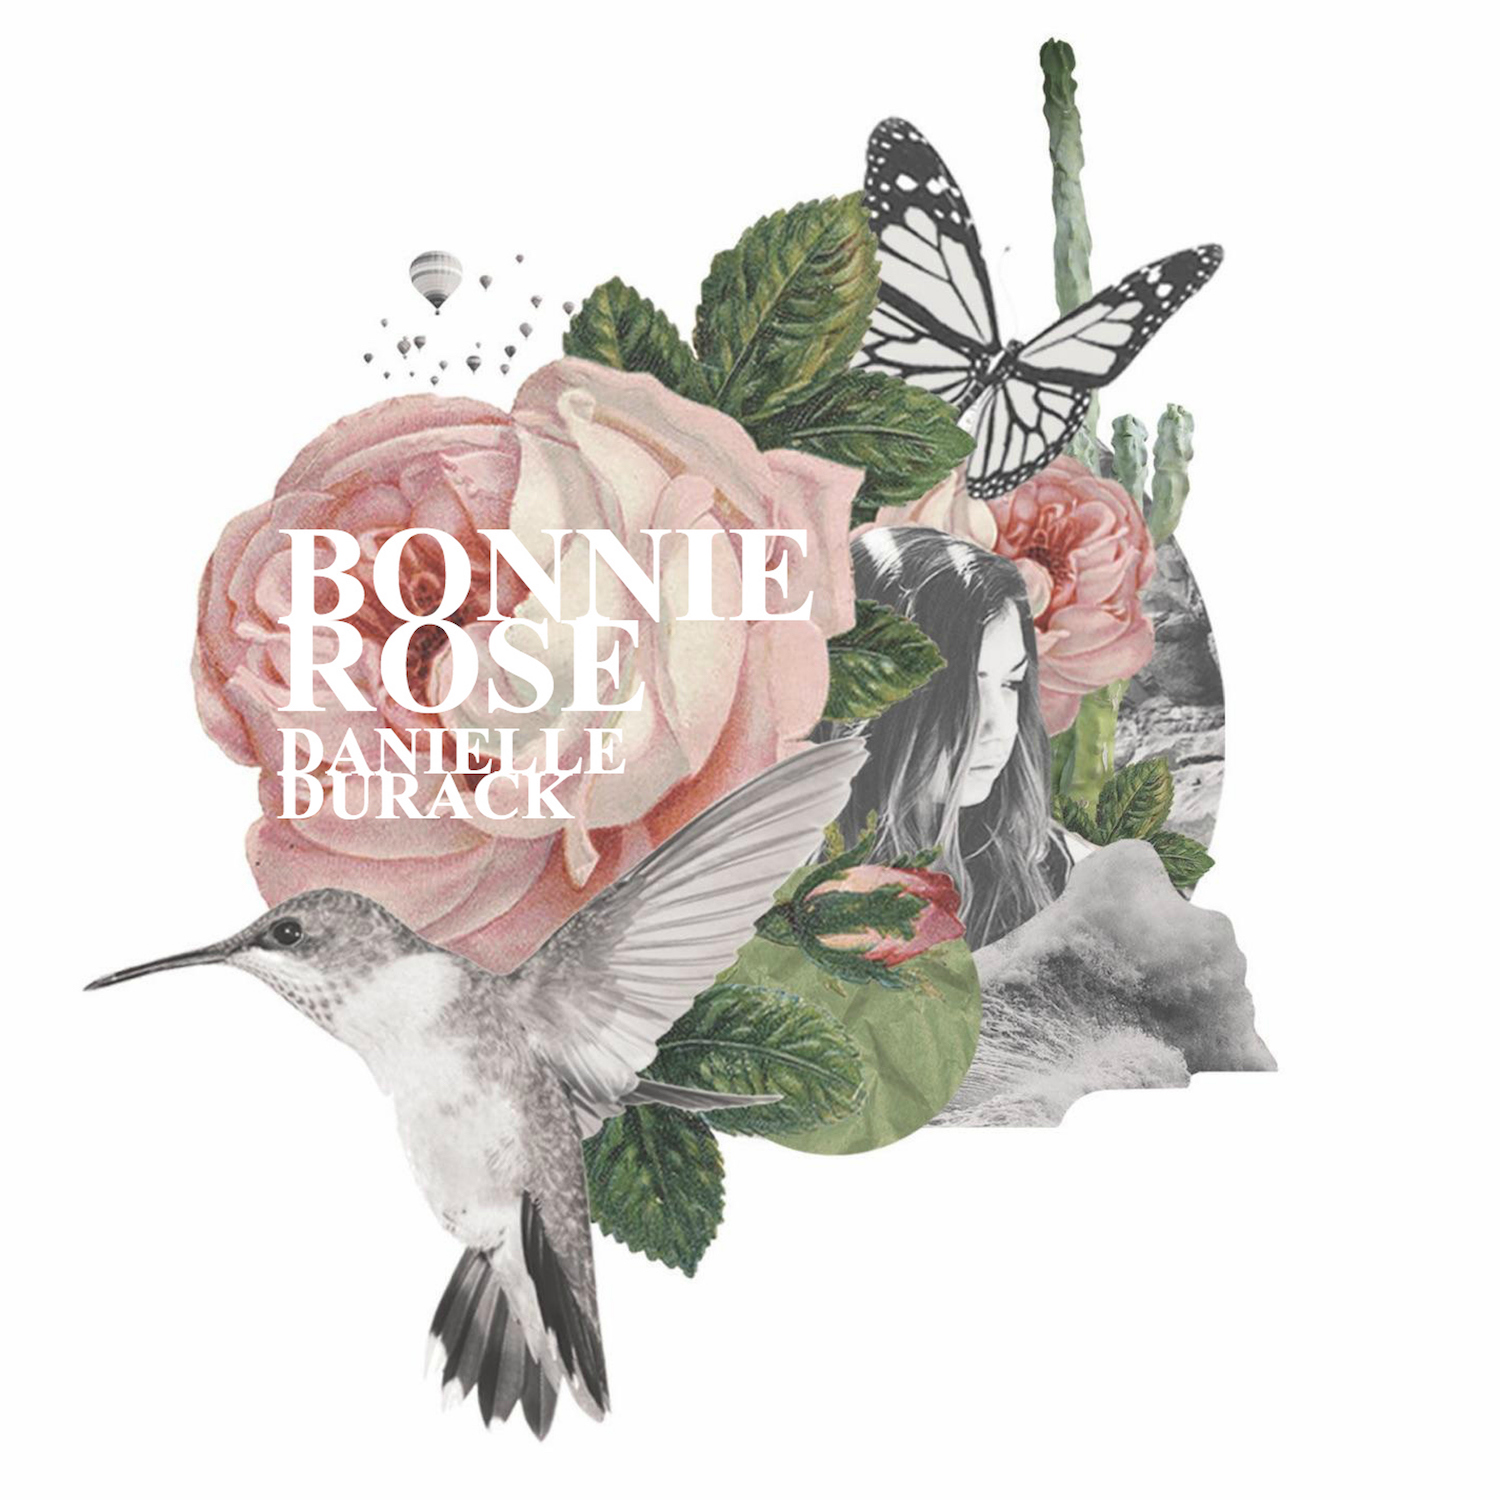 Bonnie Rose  Released March 1, 2017